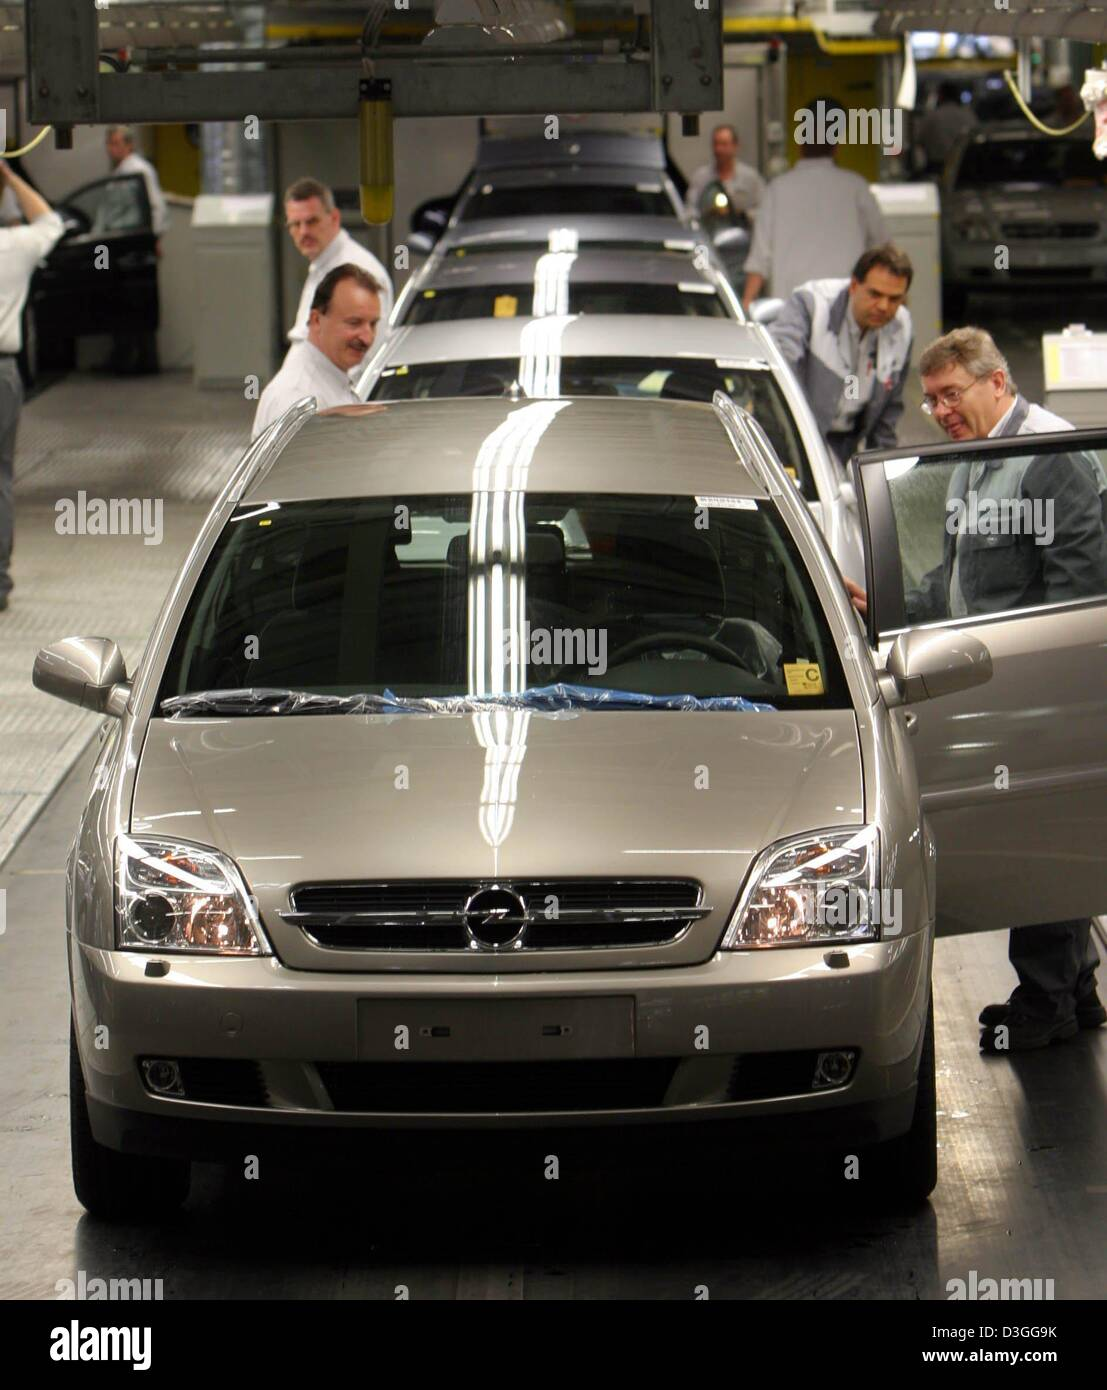 (dpa files) - Employees check the finished Opel Vectra models which were manufactured at the Opel car factory, a - Stock Image